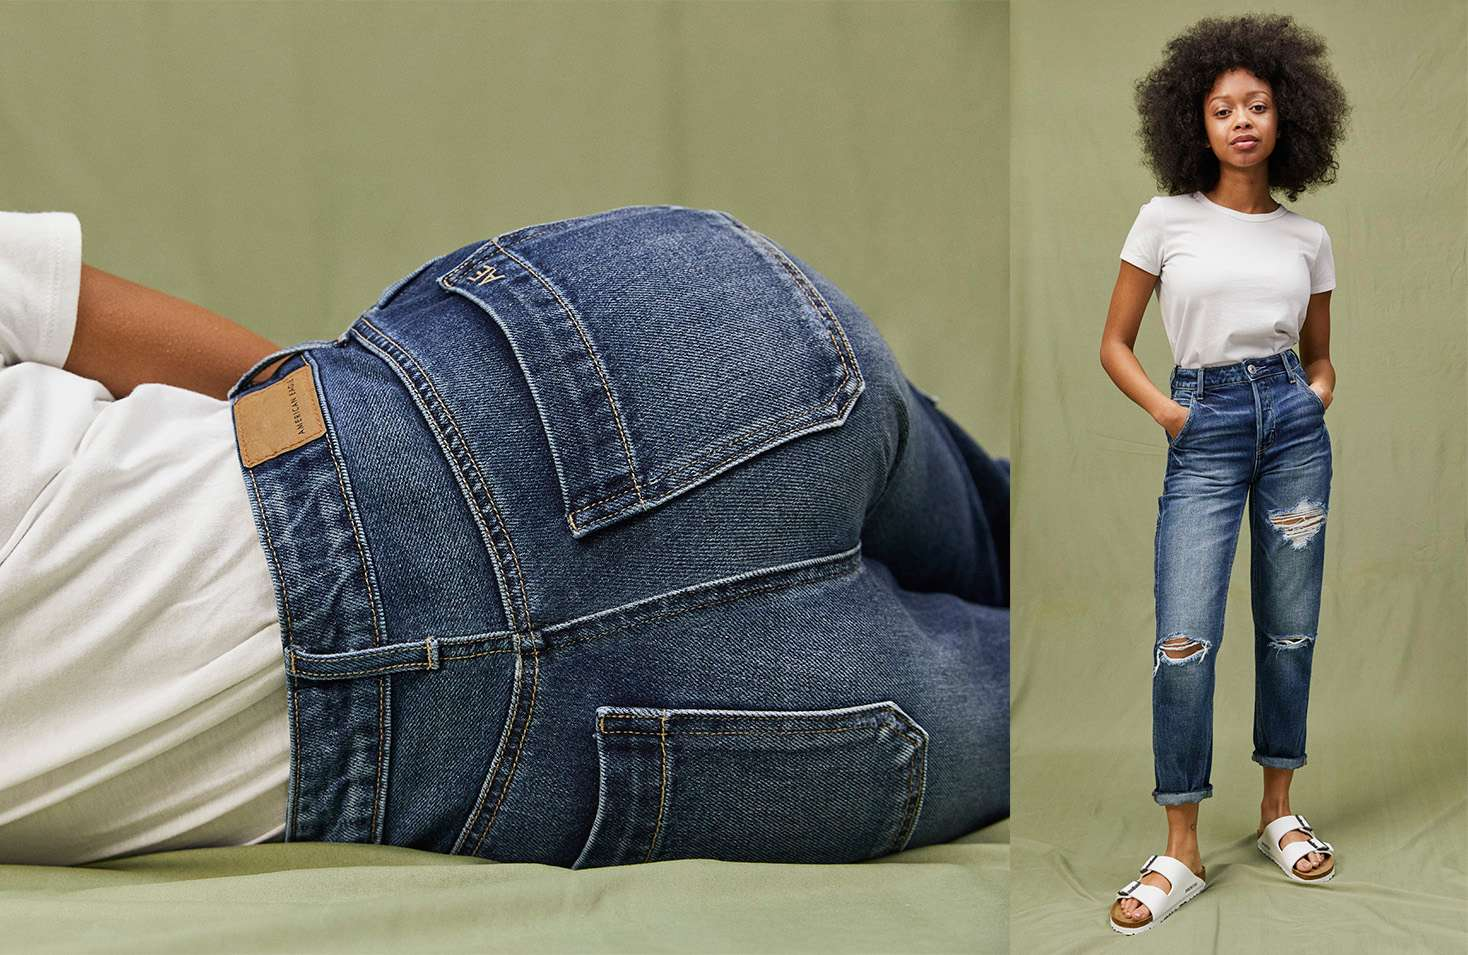 b9522074e21 Anajah is 5 1 and wearing the High-Waisted Tomgirl in size 00 Short.